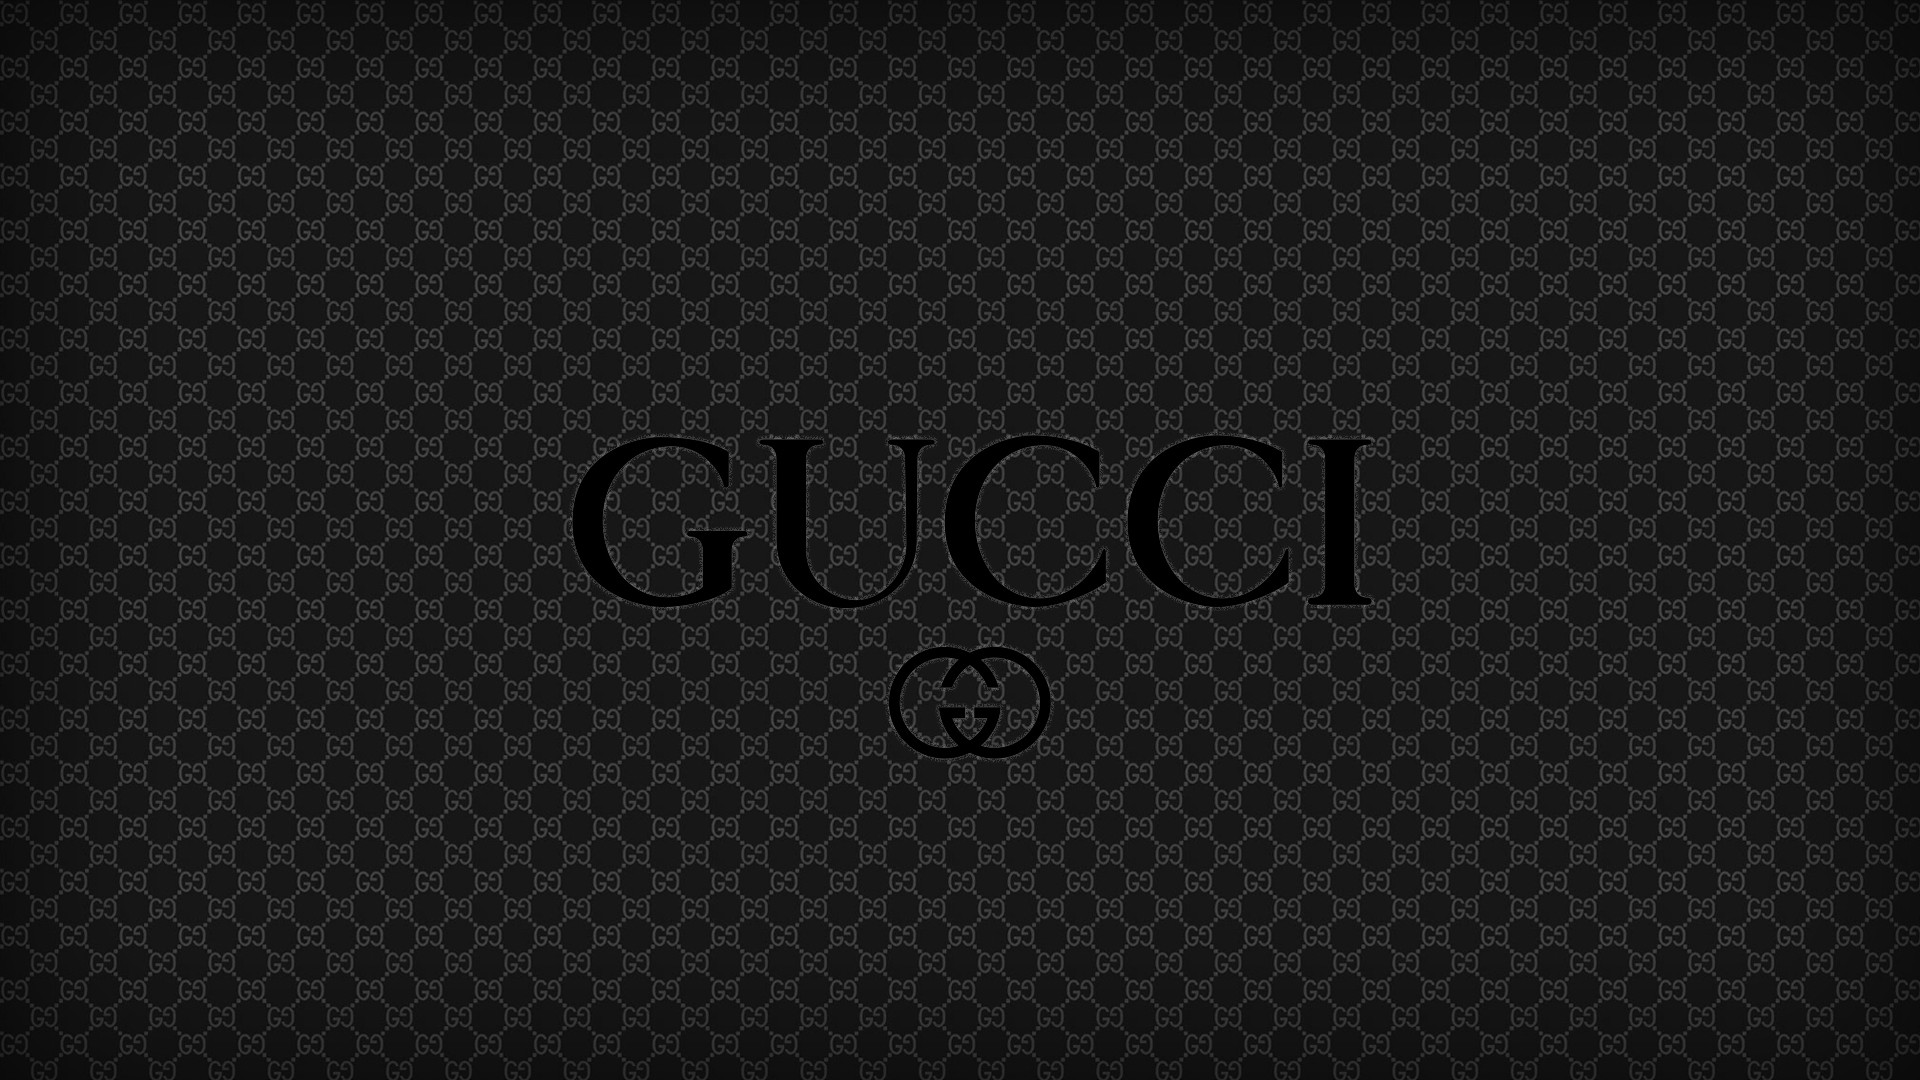 Download Gucci Wallpaper 16089 1920x1080 Px High